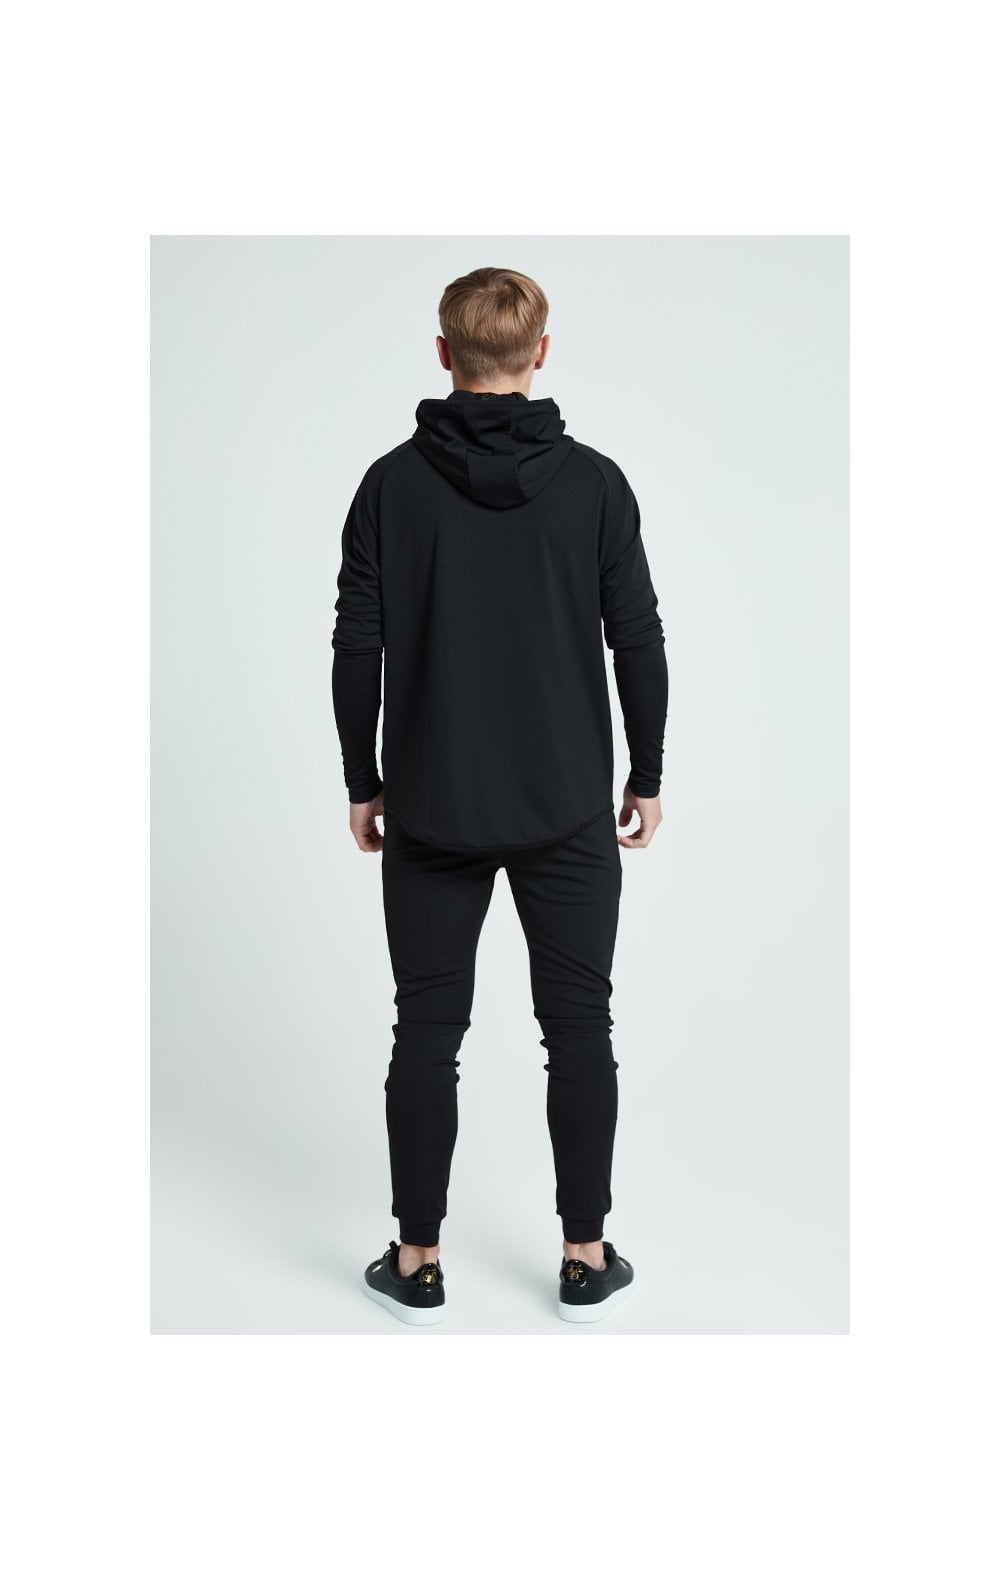 Illusive London Core Fitted Joggers - Black (6)